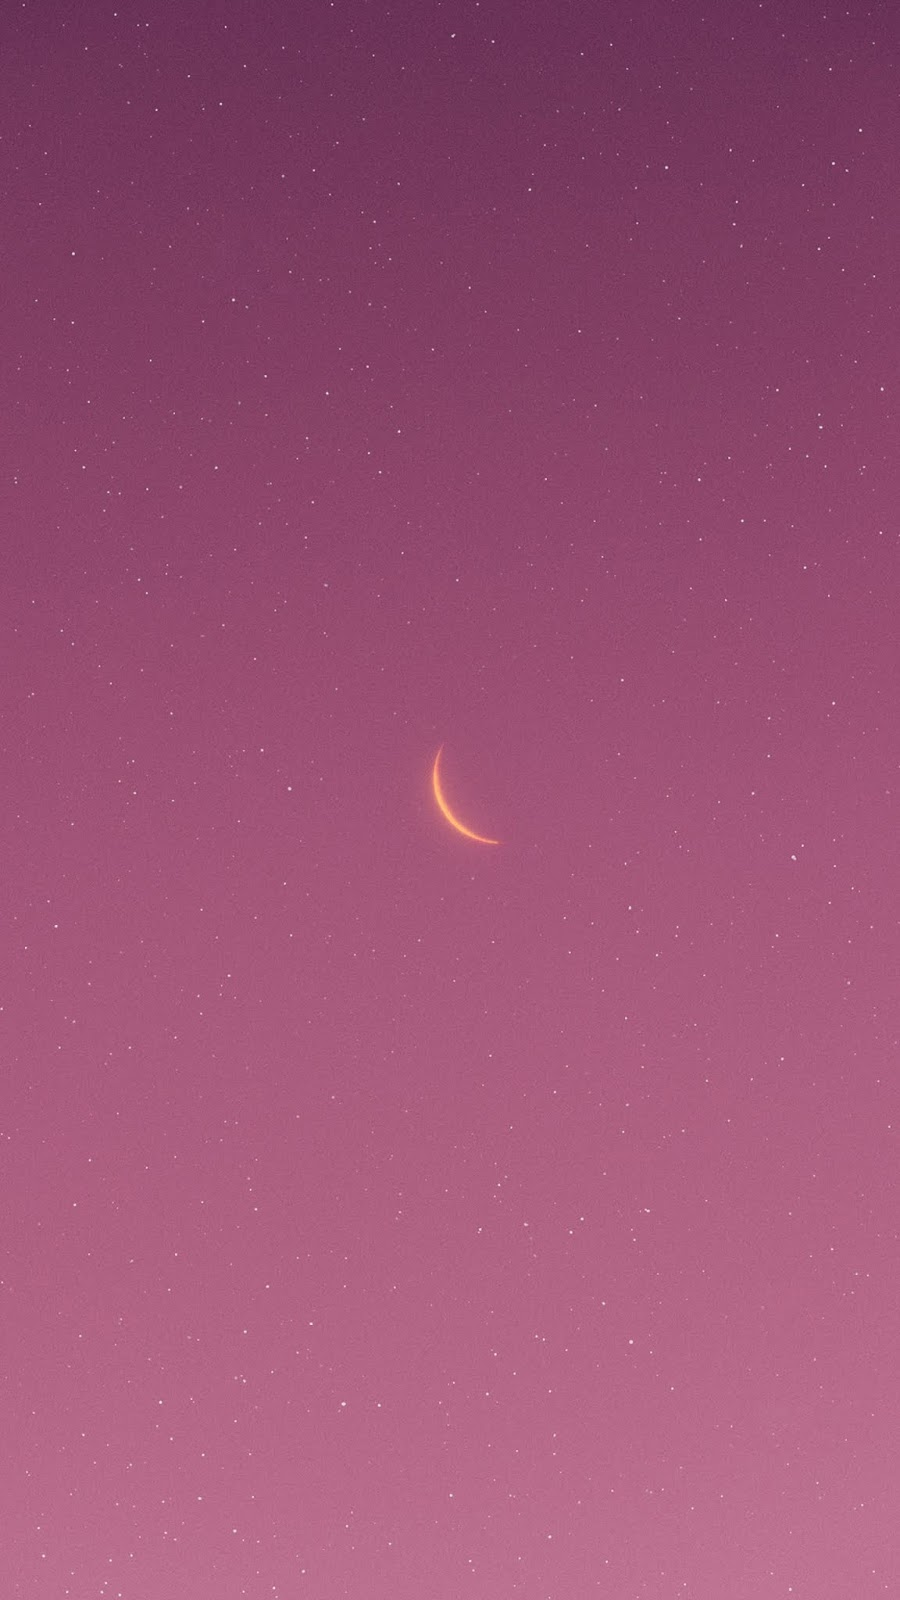 Aesthetic crescent moon